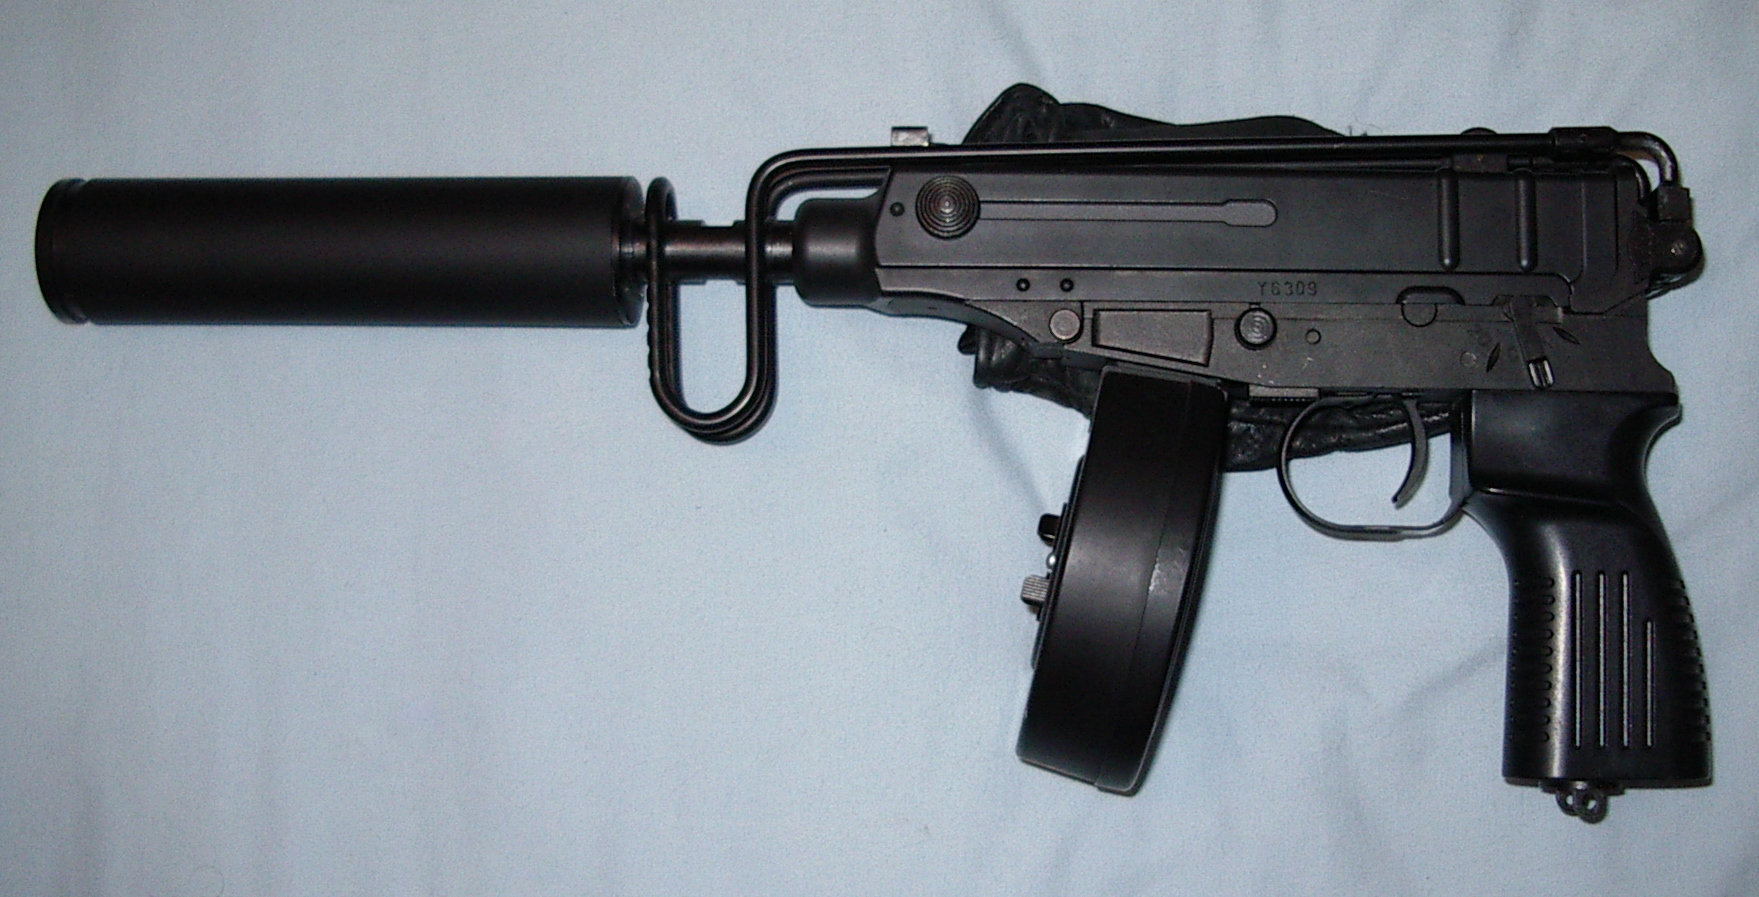 Thinking about getting into airsoft... | Page 4 | Mortal Online Forums M14 Ebr Airsoft